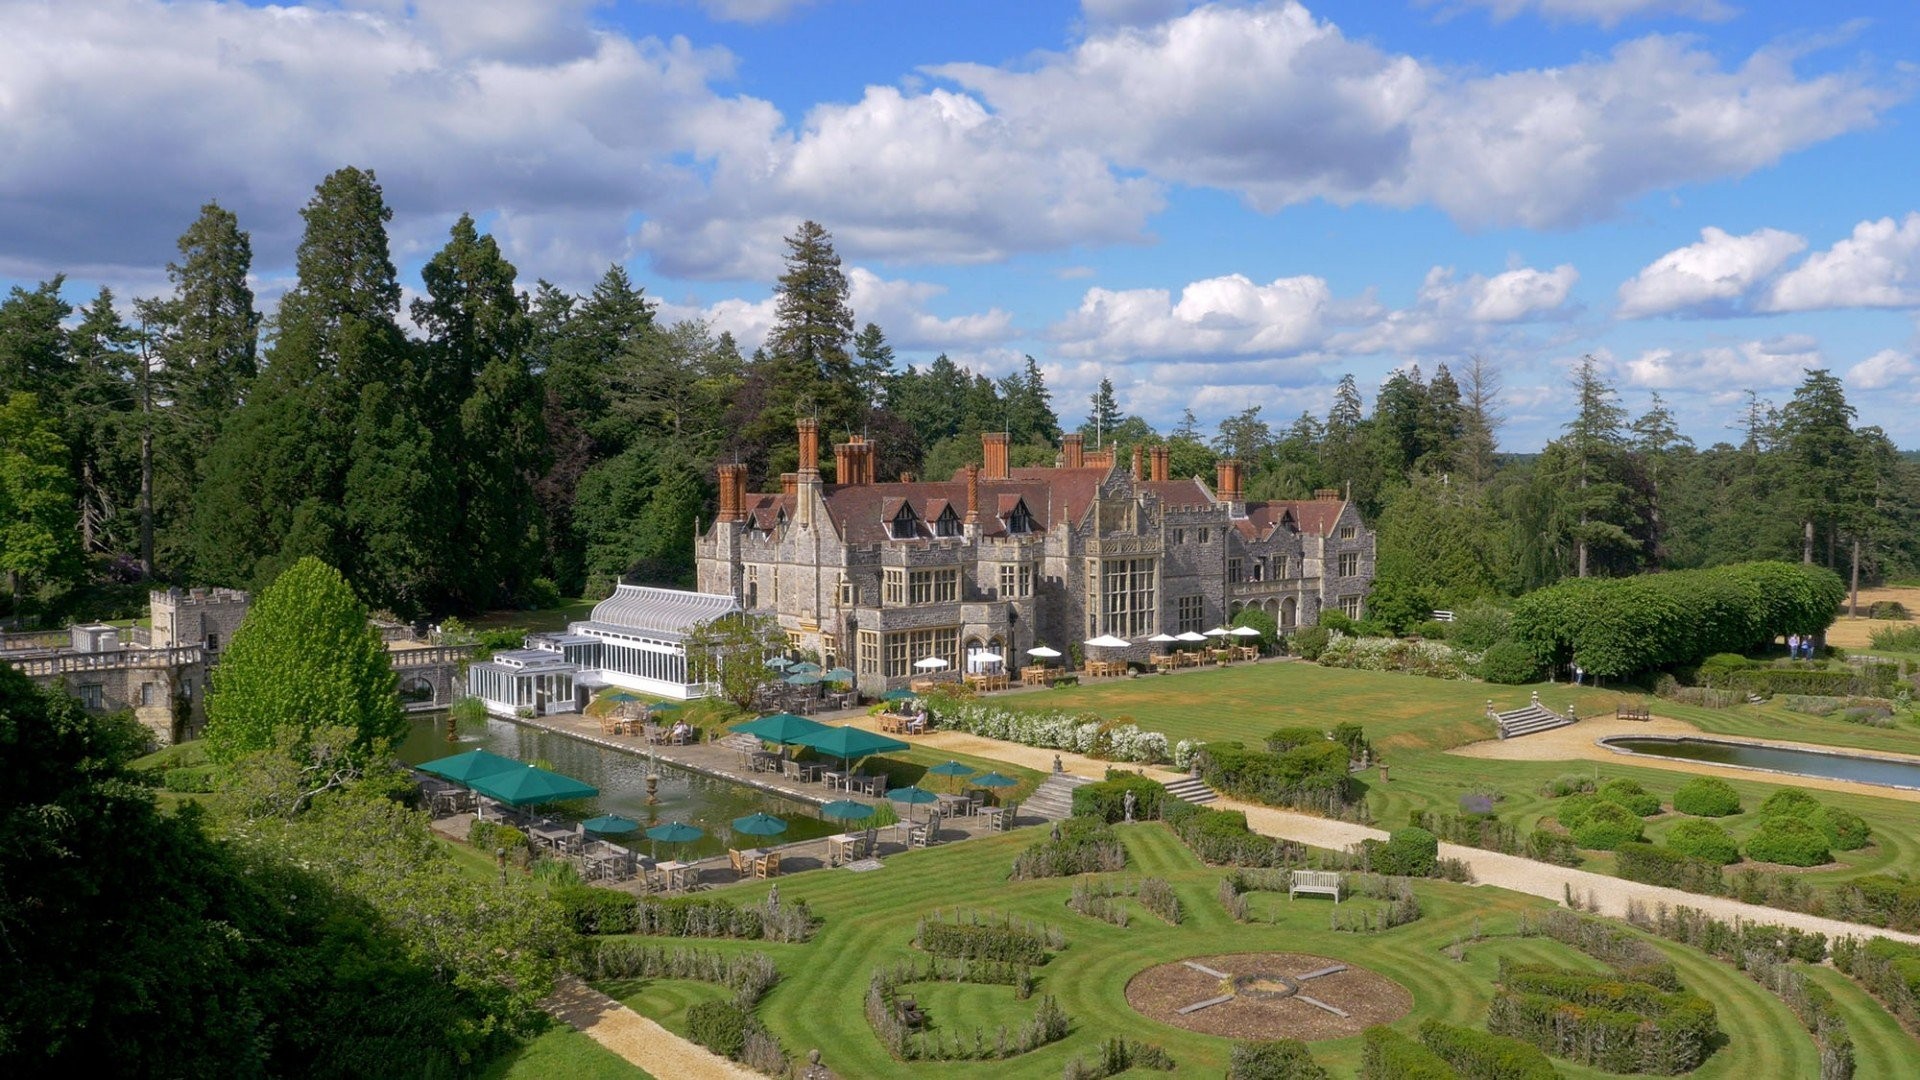 Country House Hotels Midlands